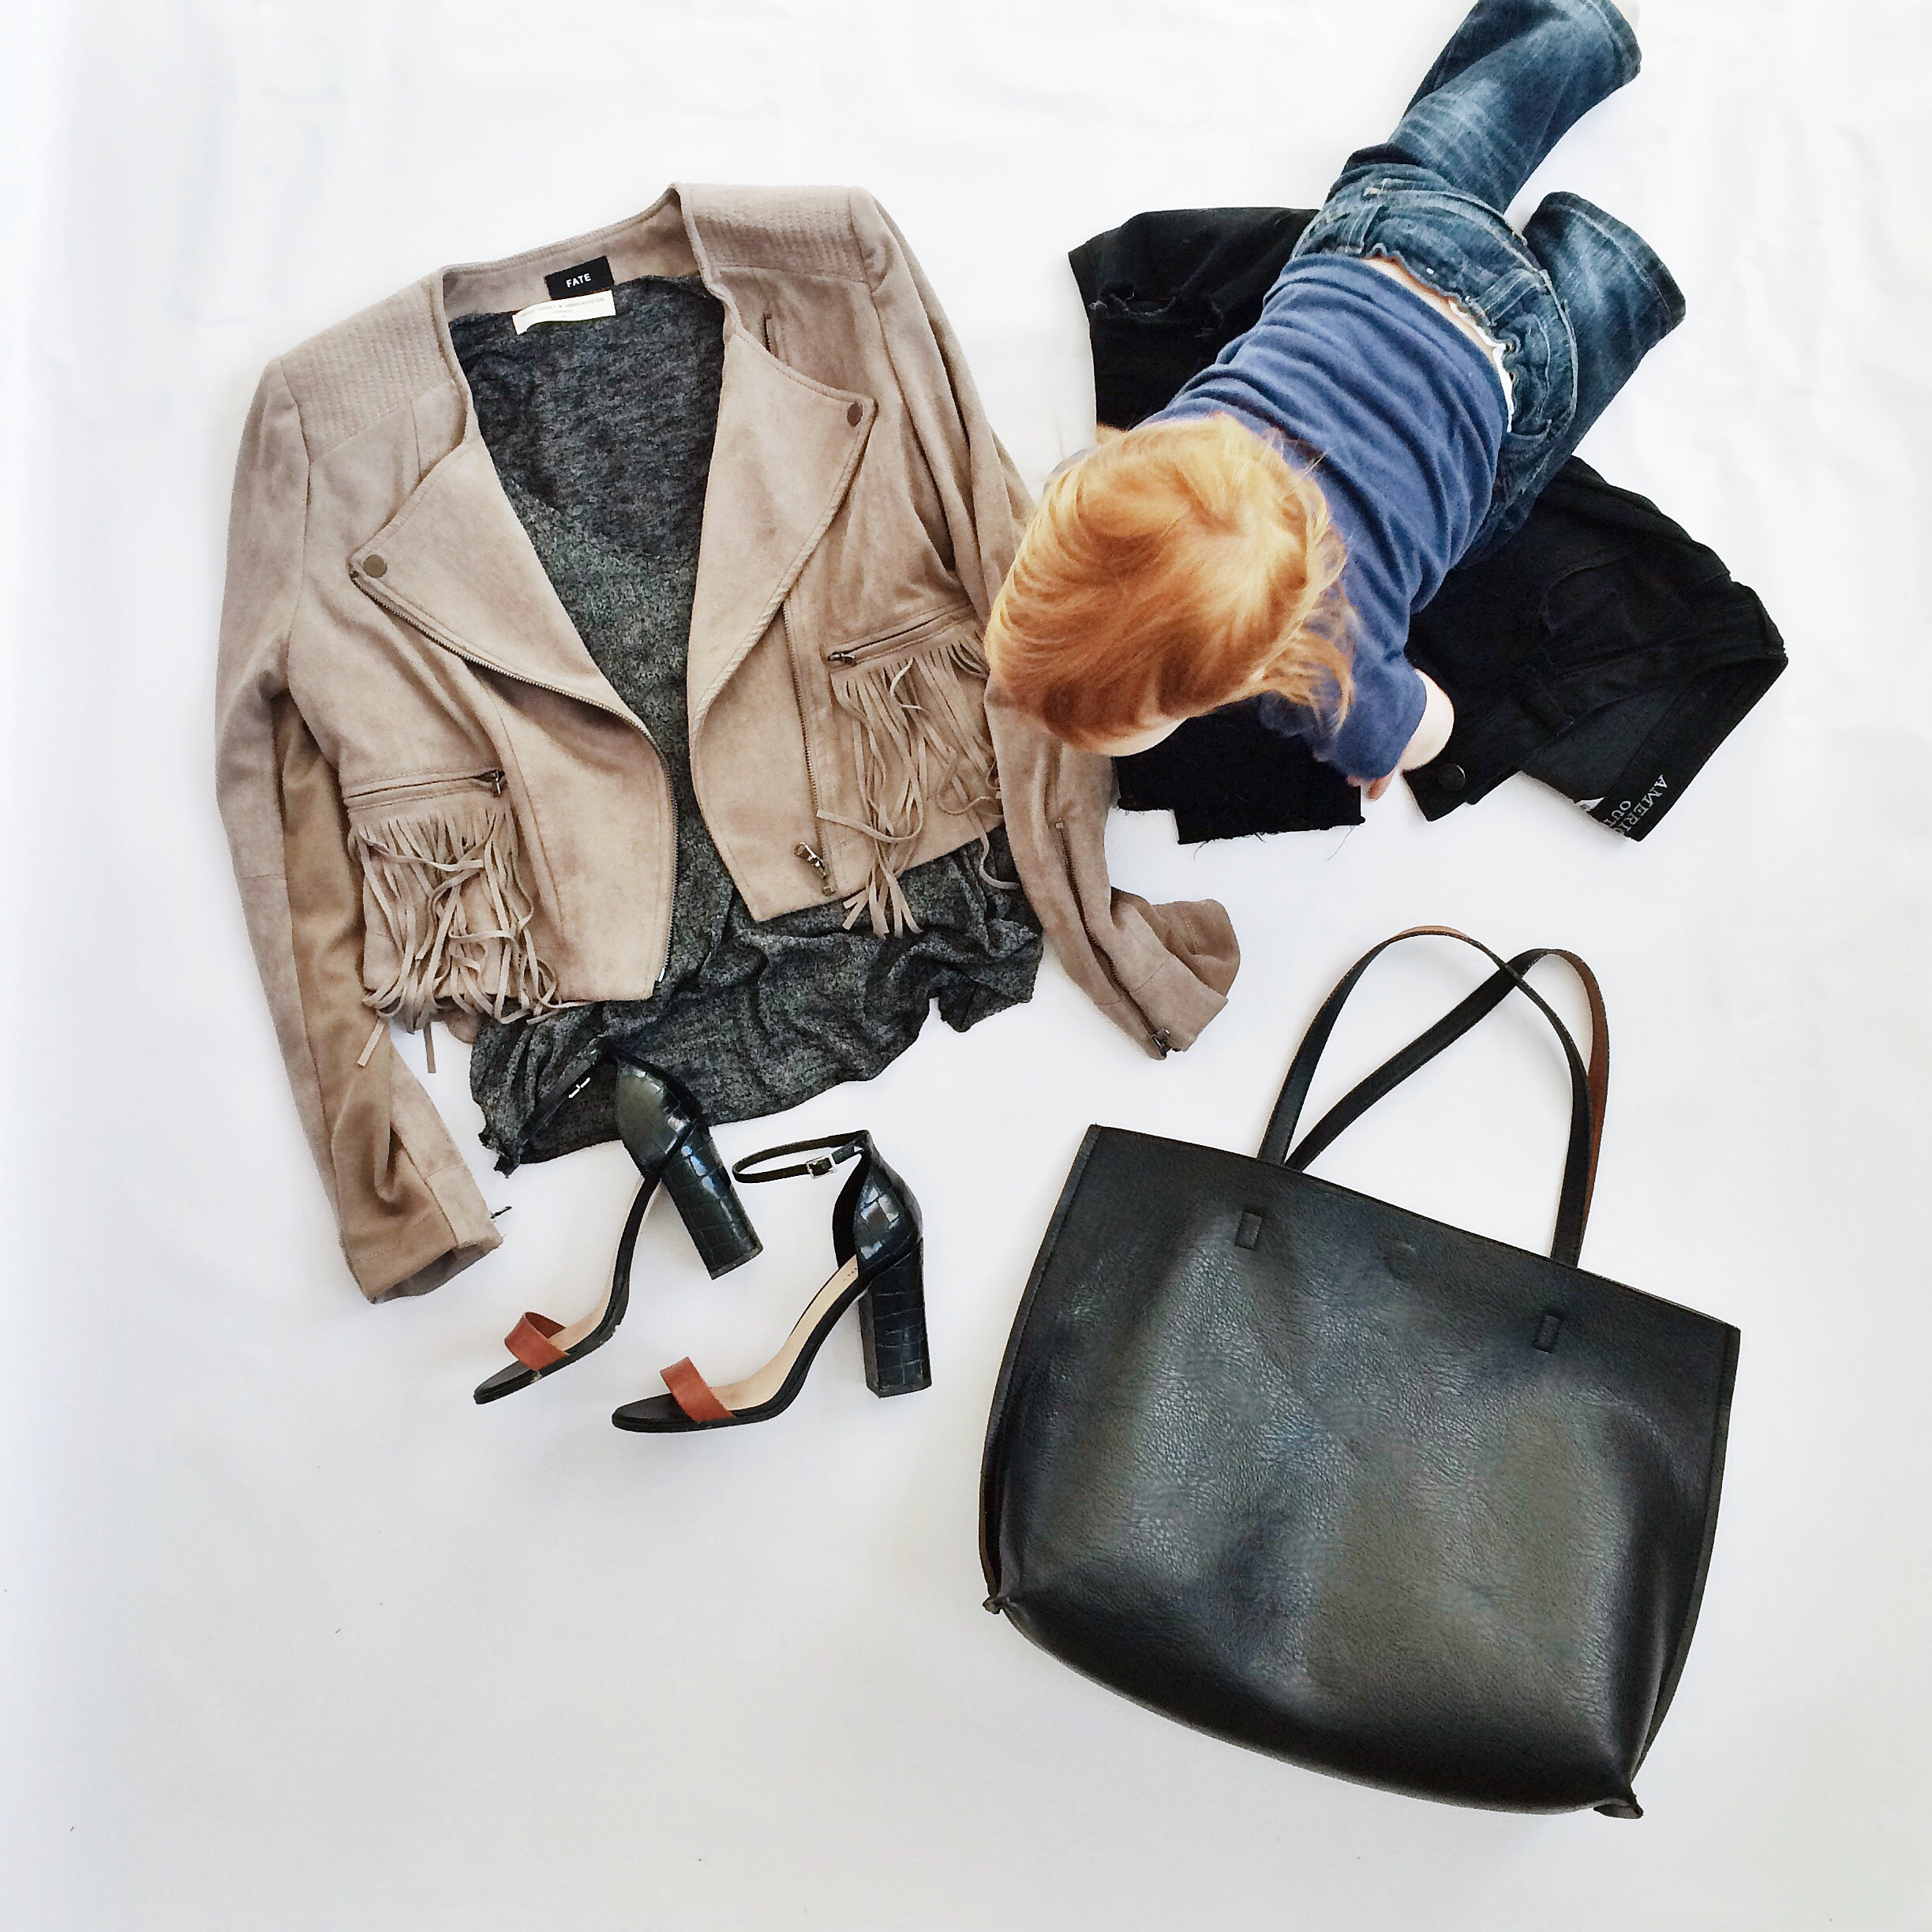 Closet 101 / How to Thrift Quality Pieces for Your Closet, Part III: How to Look